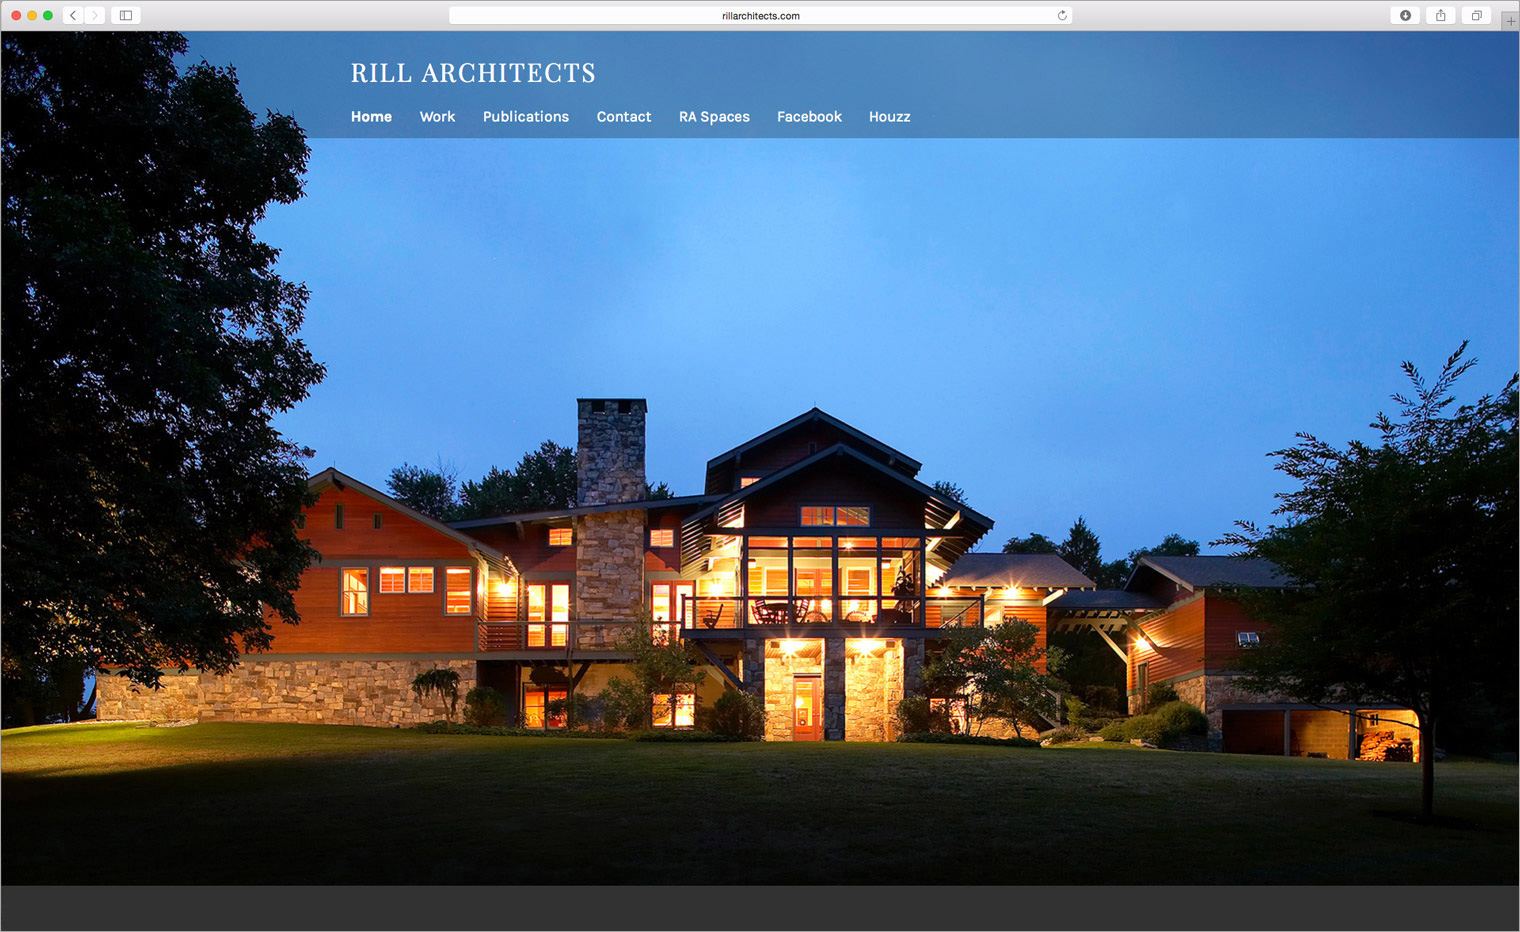 Image from the Rill Architects Website